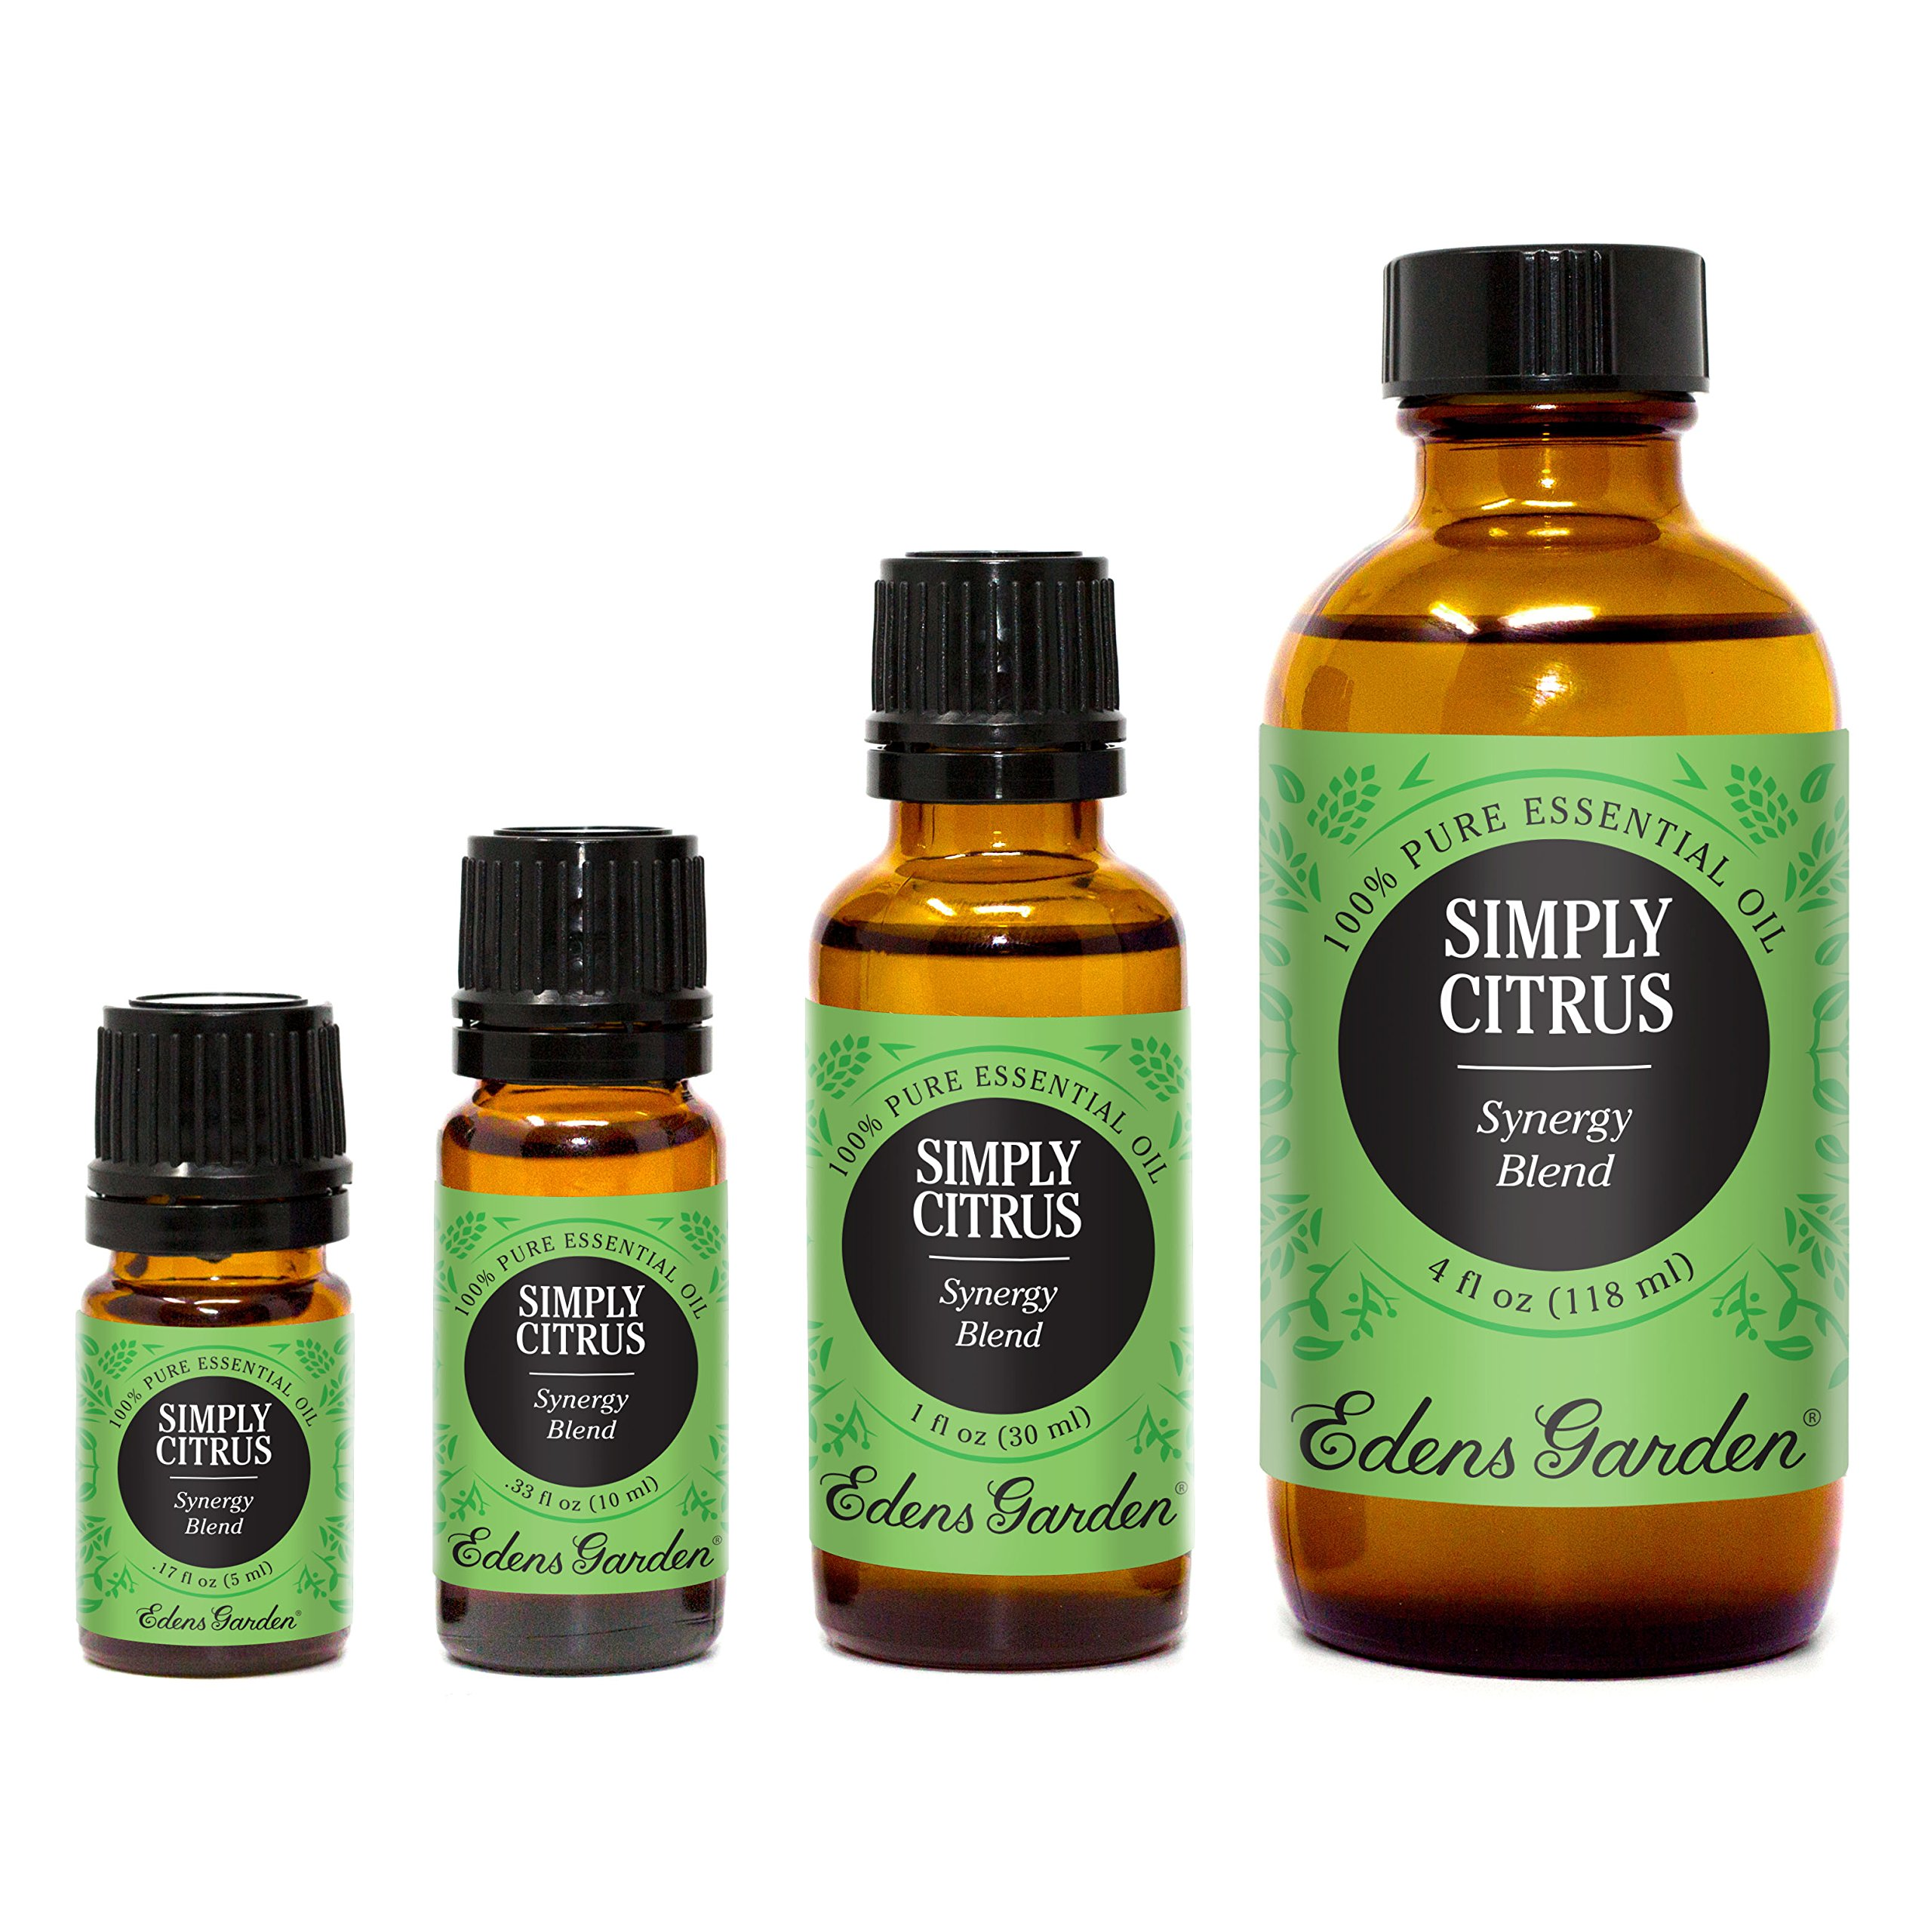 Edens Garden Simply Citrus Synergy Blend Essential Oil, 30 mL